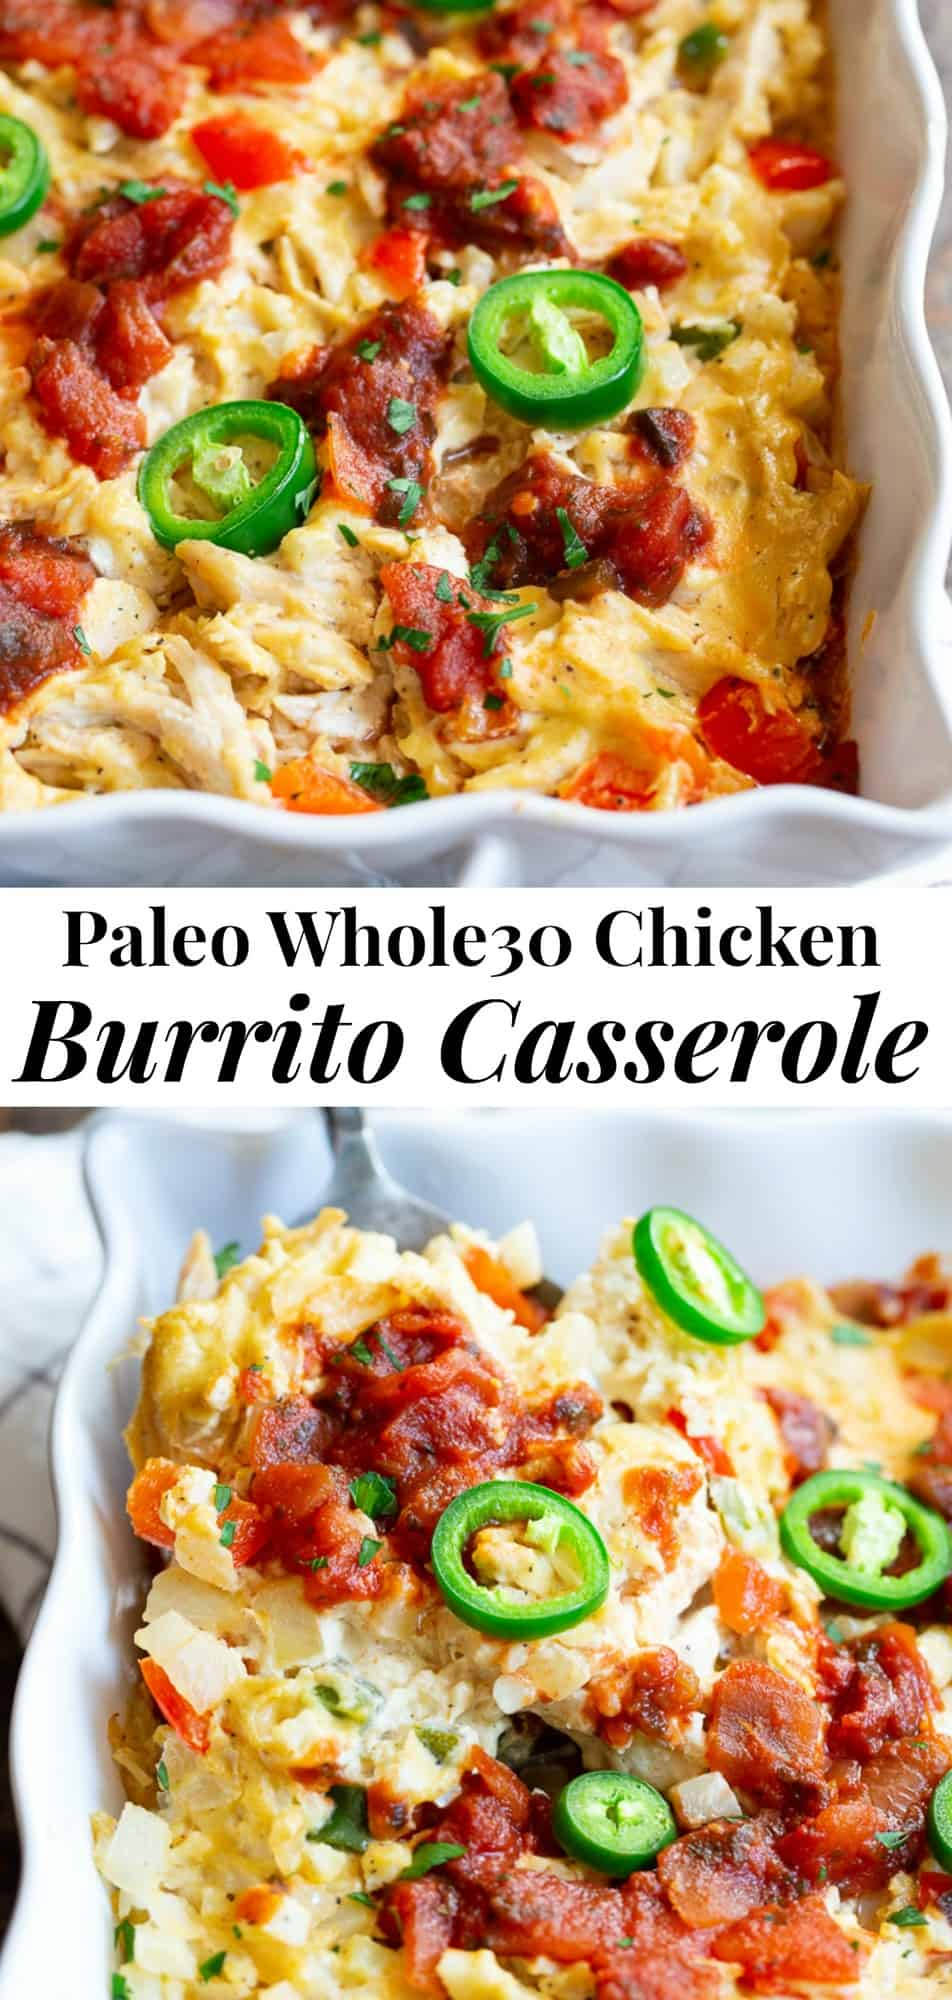 This chicken burrito casserole is packed with savory shredded chicken, a flavorful creamy dairy-free cashew cheese sauce, cauliflower rice, salsa, and peppers and onions.  It's simple, so satisfying, and so delicious it's addicting!  Paleo, Whole30 friendly and keto. #paleo #whole30 #lowcarb